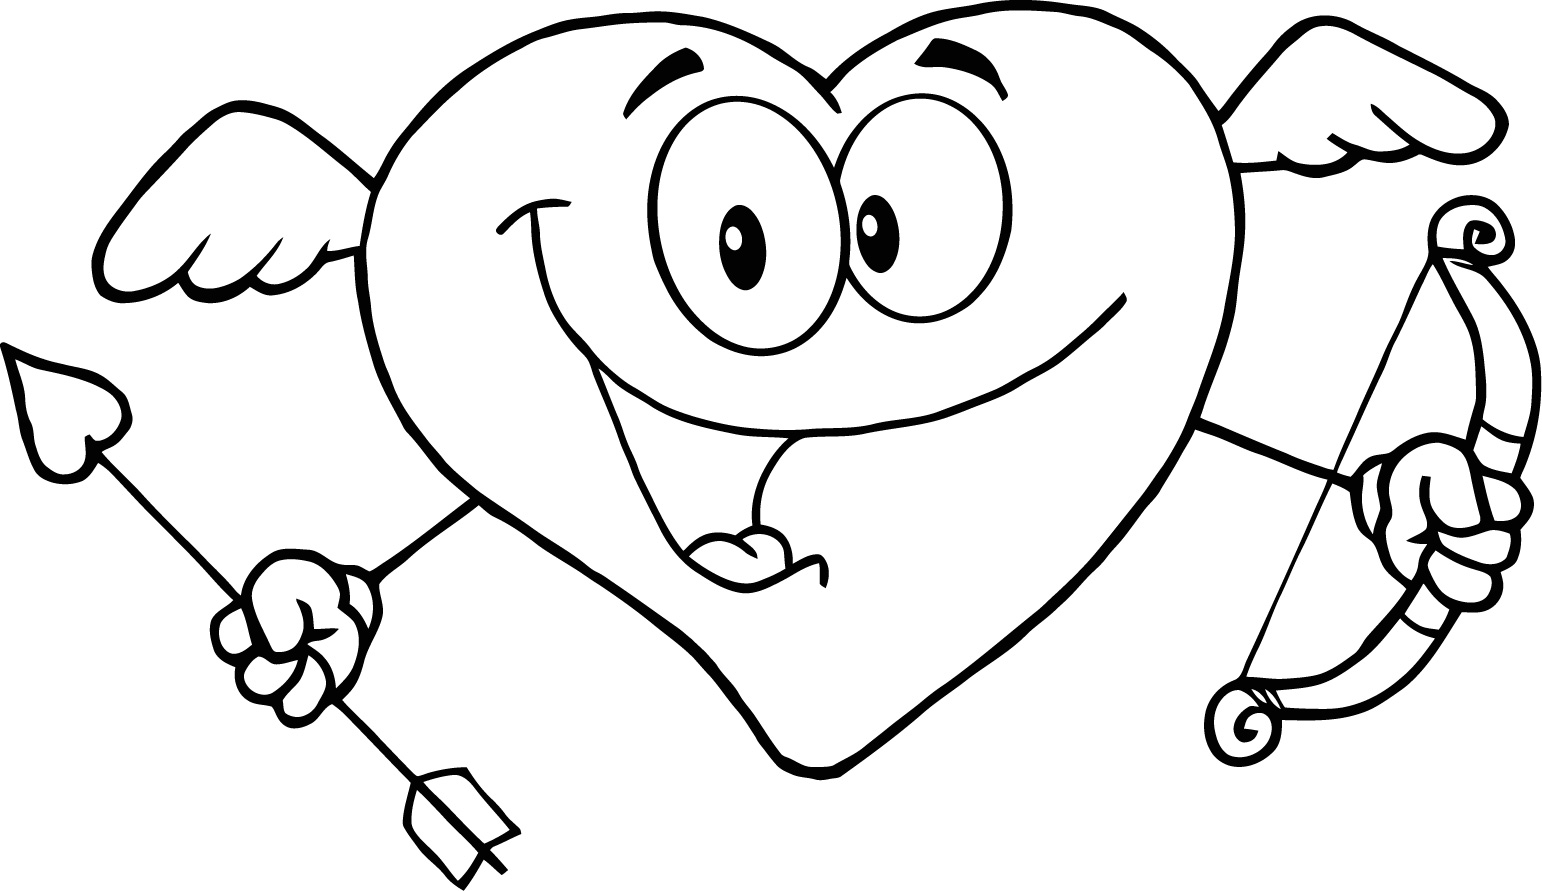 1542x891 Cute For Your Boyfriend Coloring Page Free Download